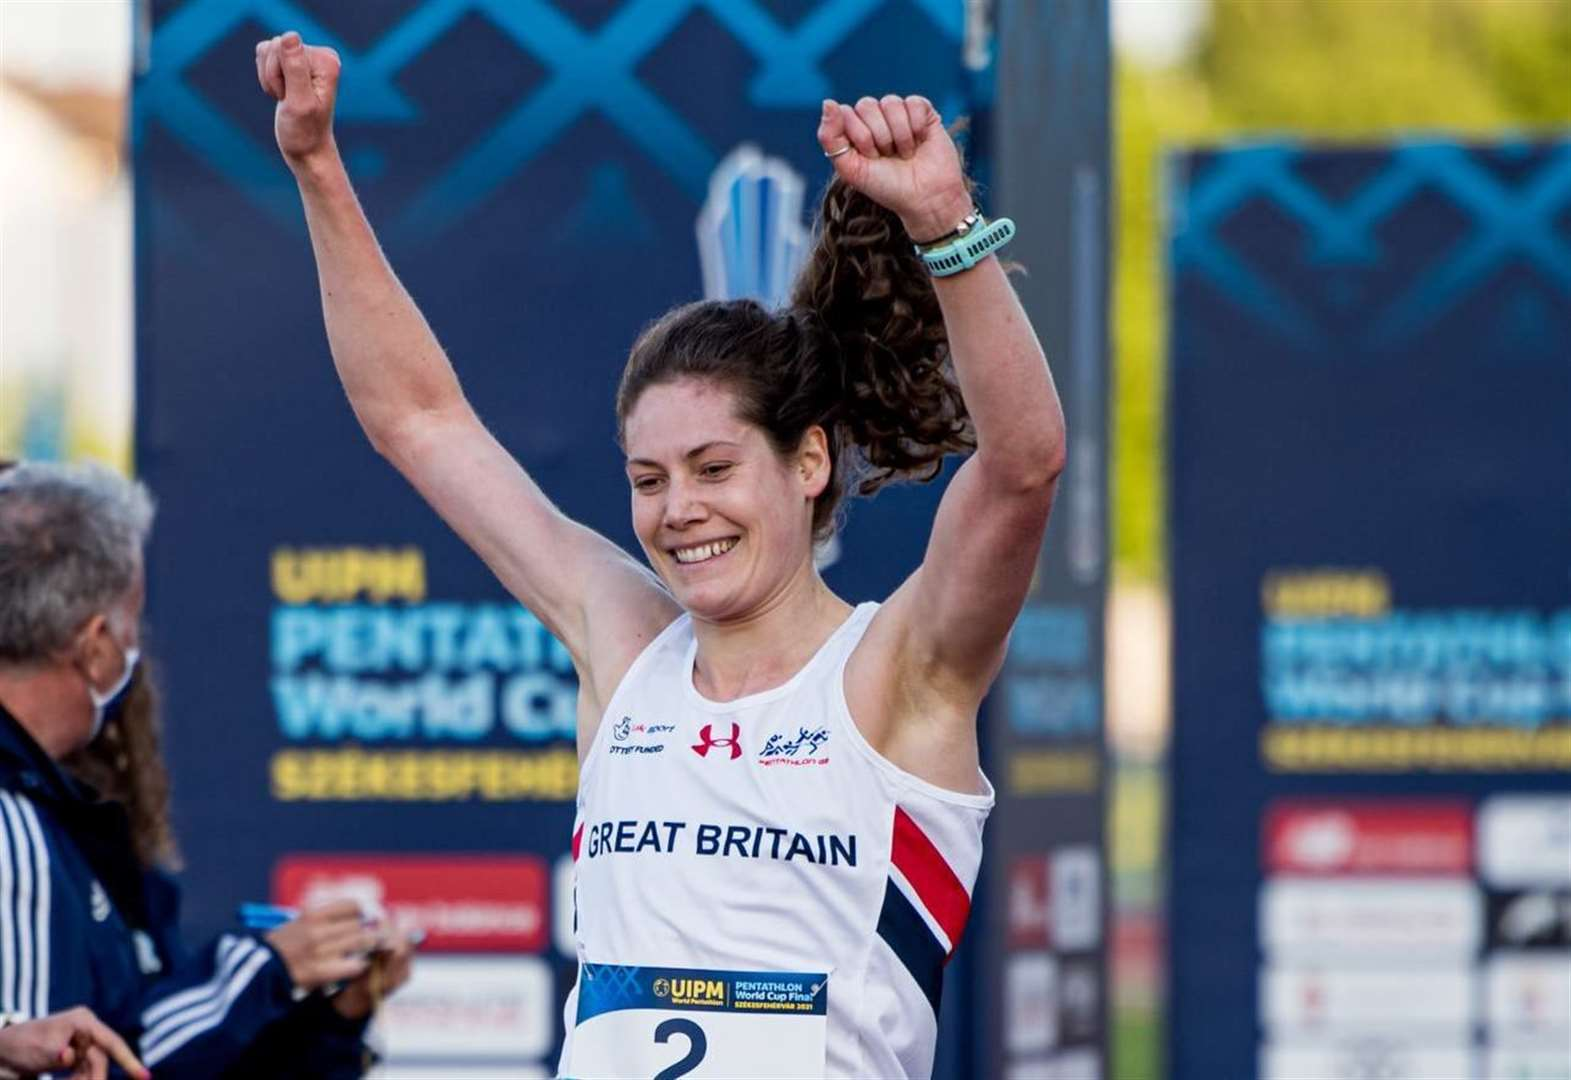 World Cup win for Olympic pentathlon hopeful